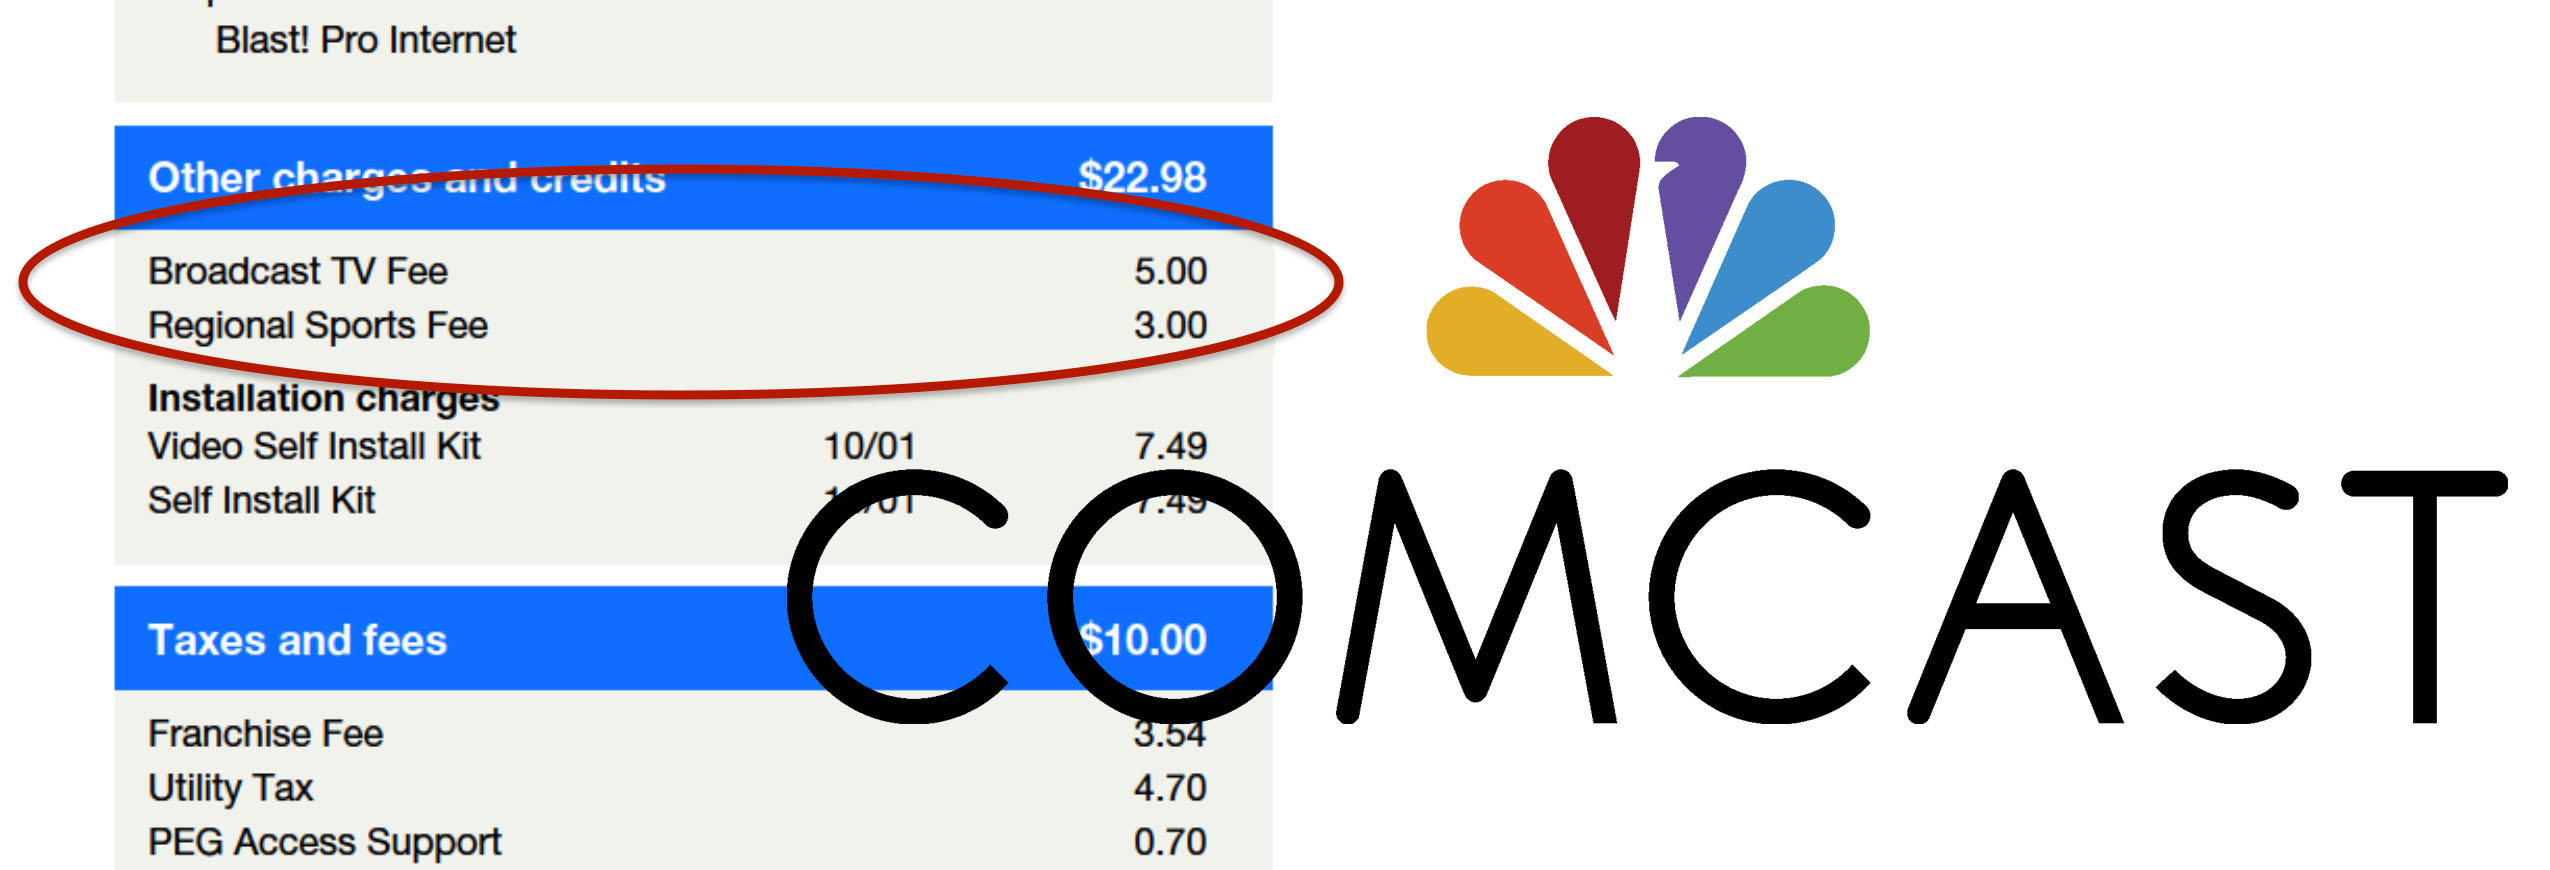 Comcast Fails To Shut Down Customer Lawsuit Over 'Broadcast TV' & 'Regional Sports' Fees